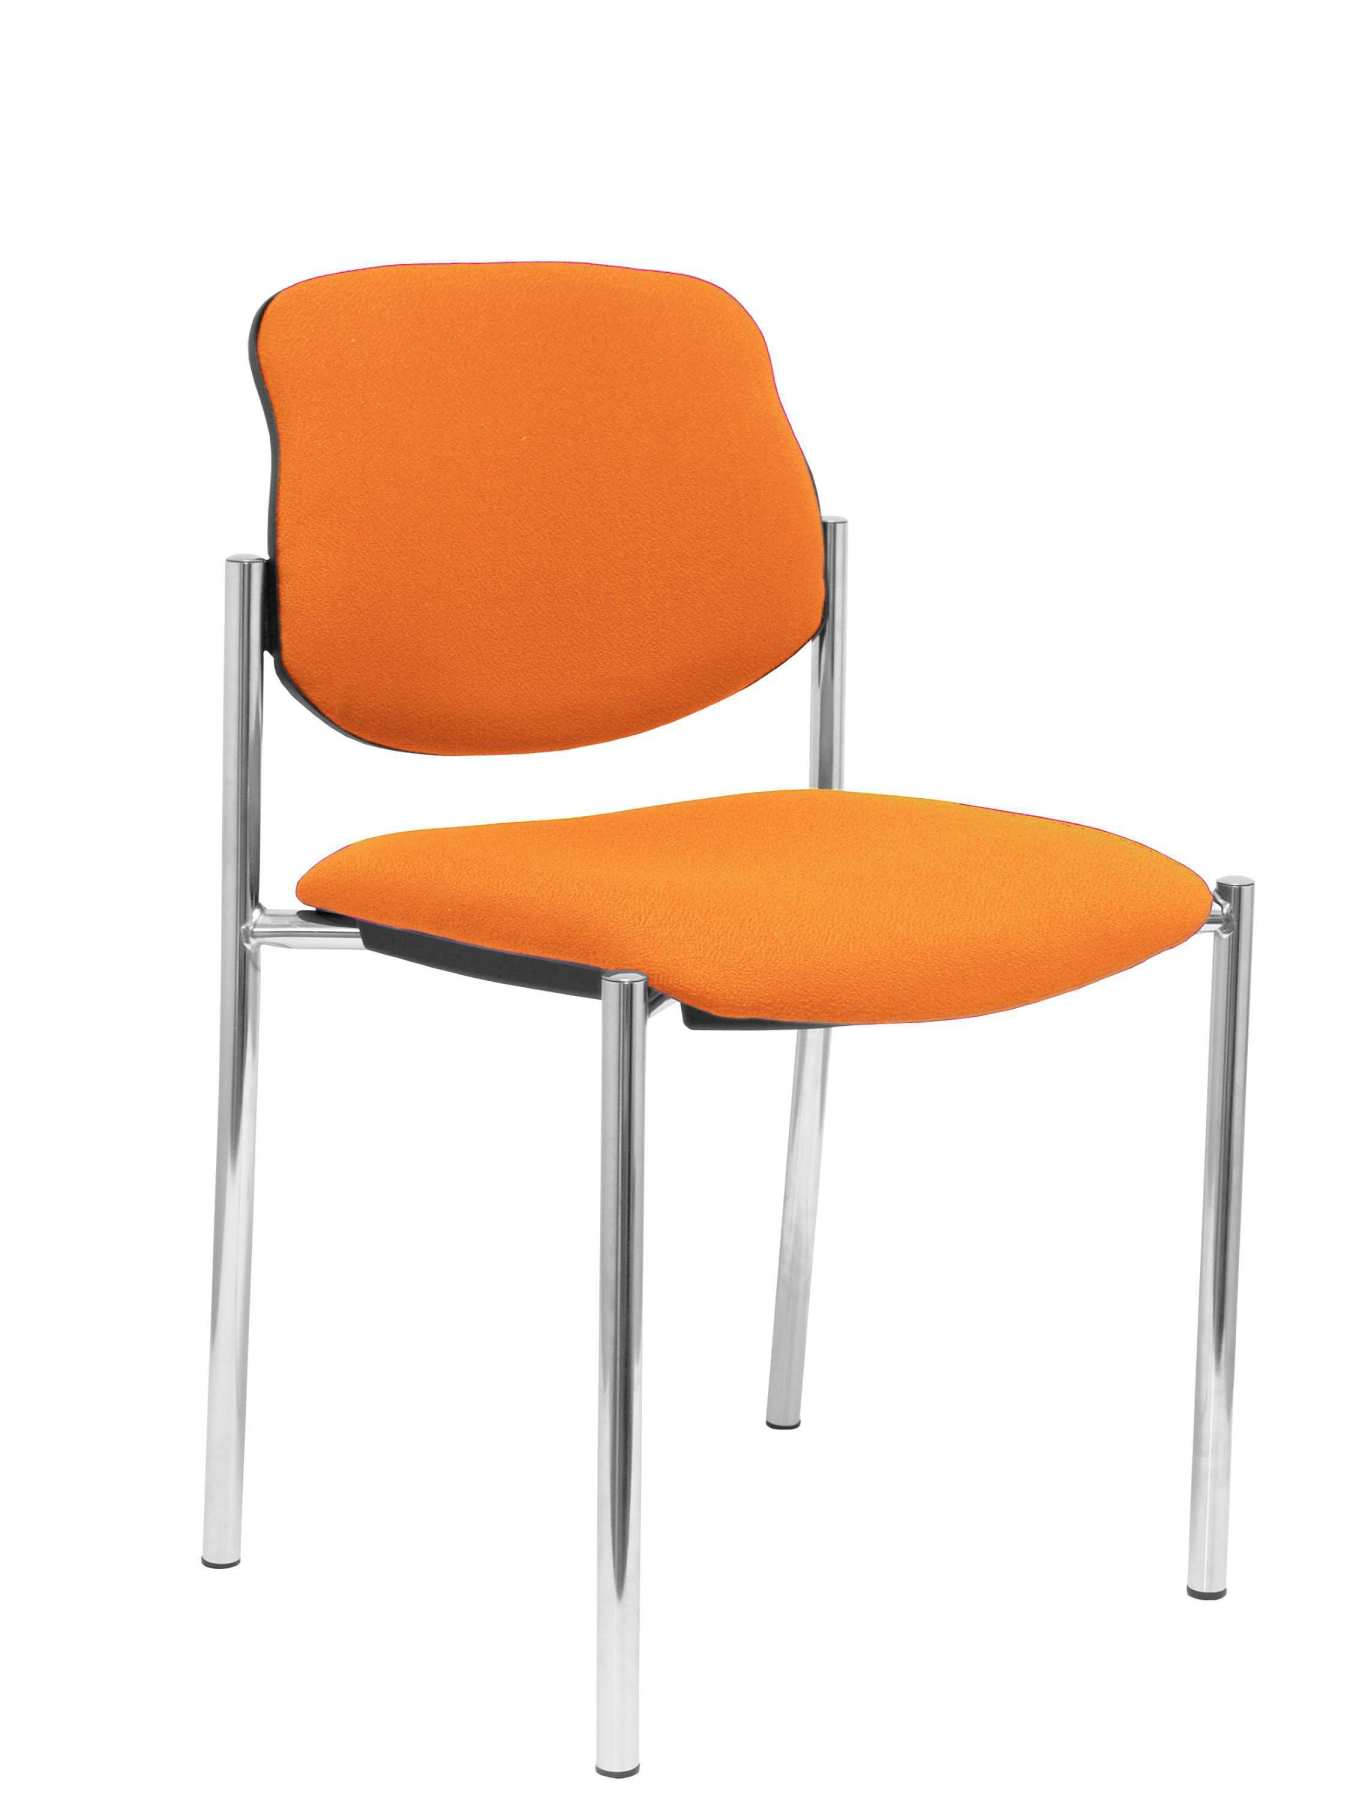 Confident Chair 4-leg And Estructrua Chrome Seat And Back Upholstered In Fabric BALI Orange PIQUERAS And